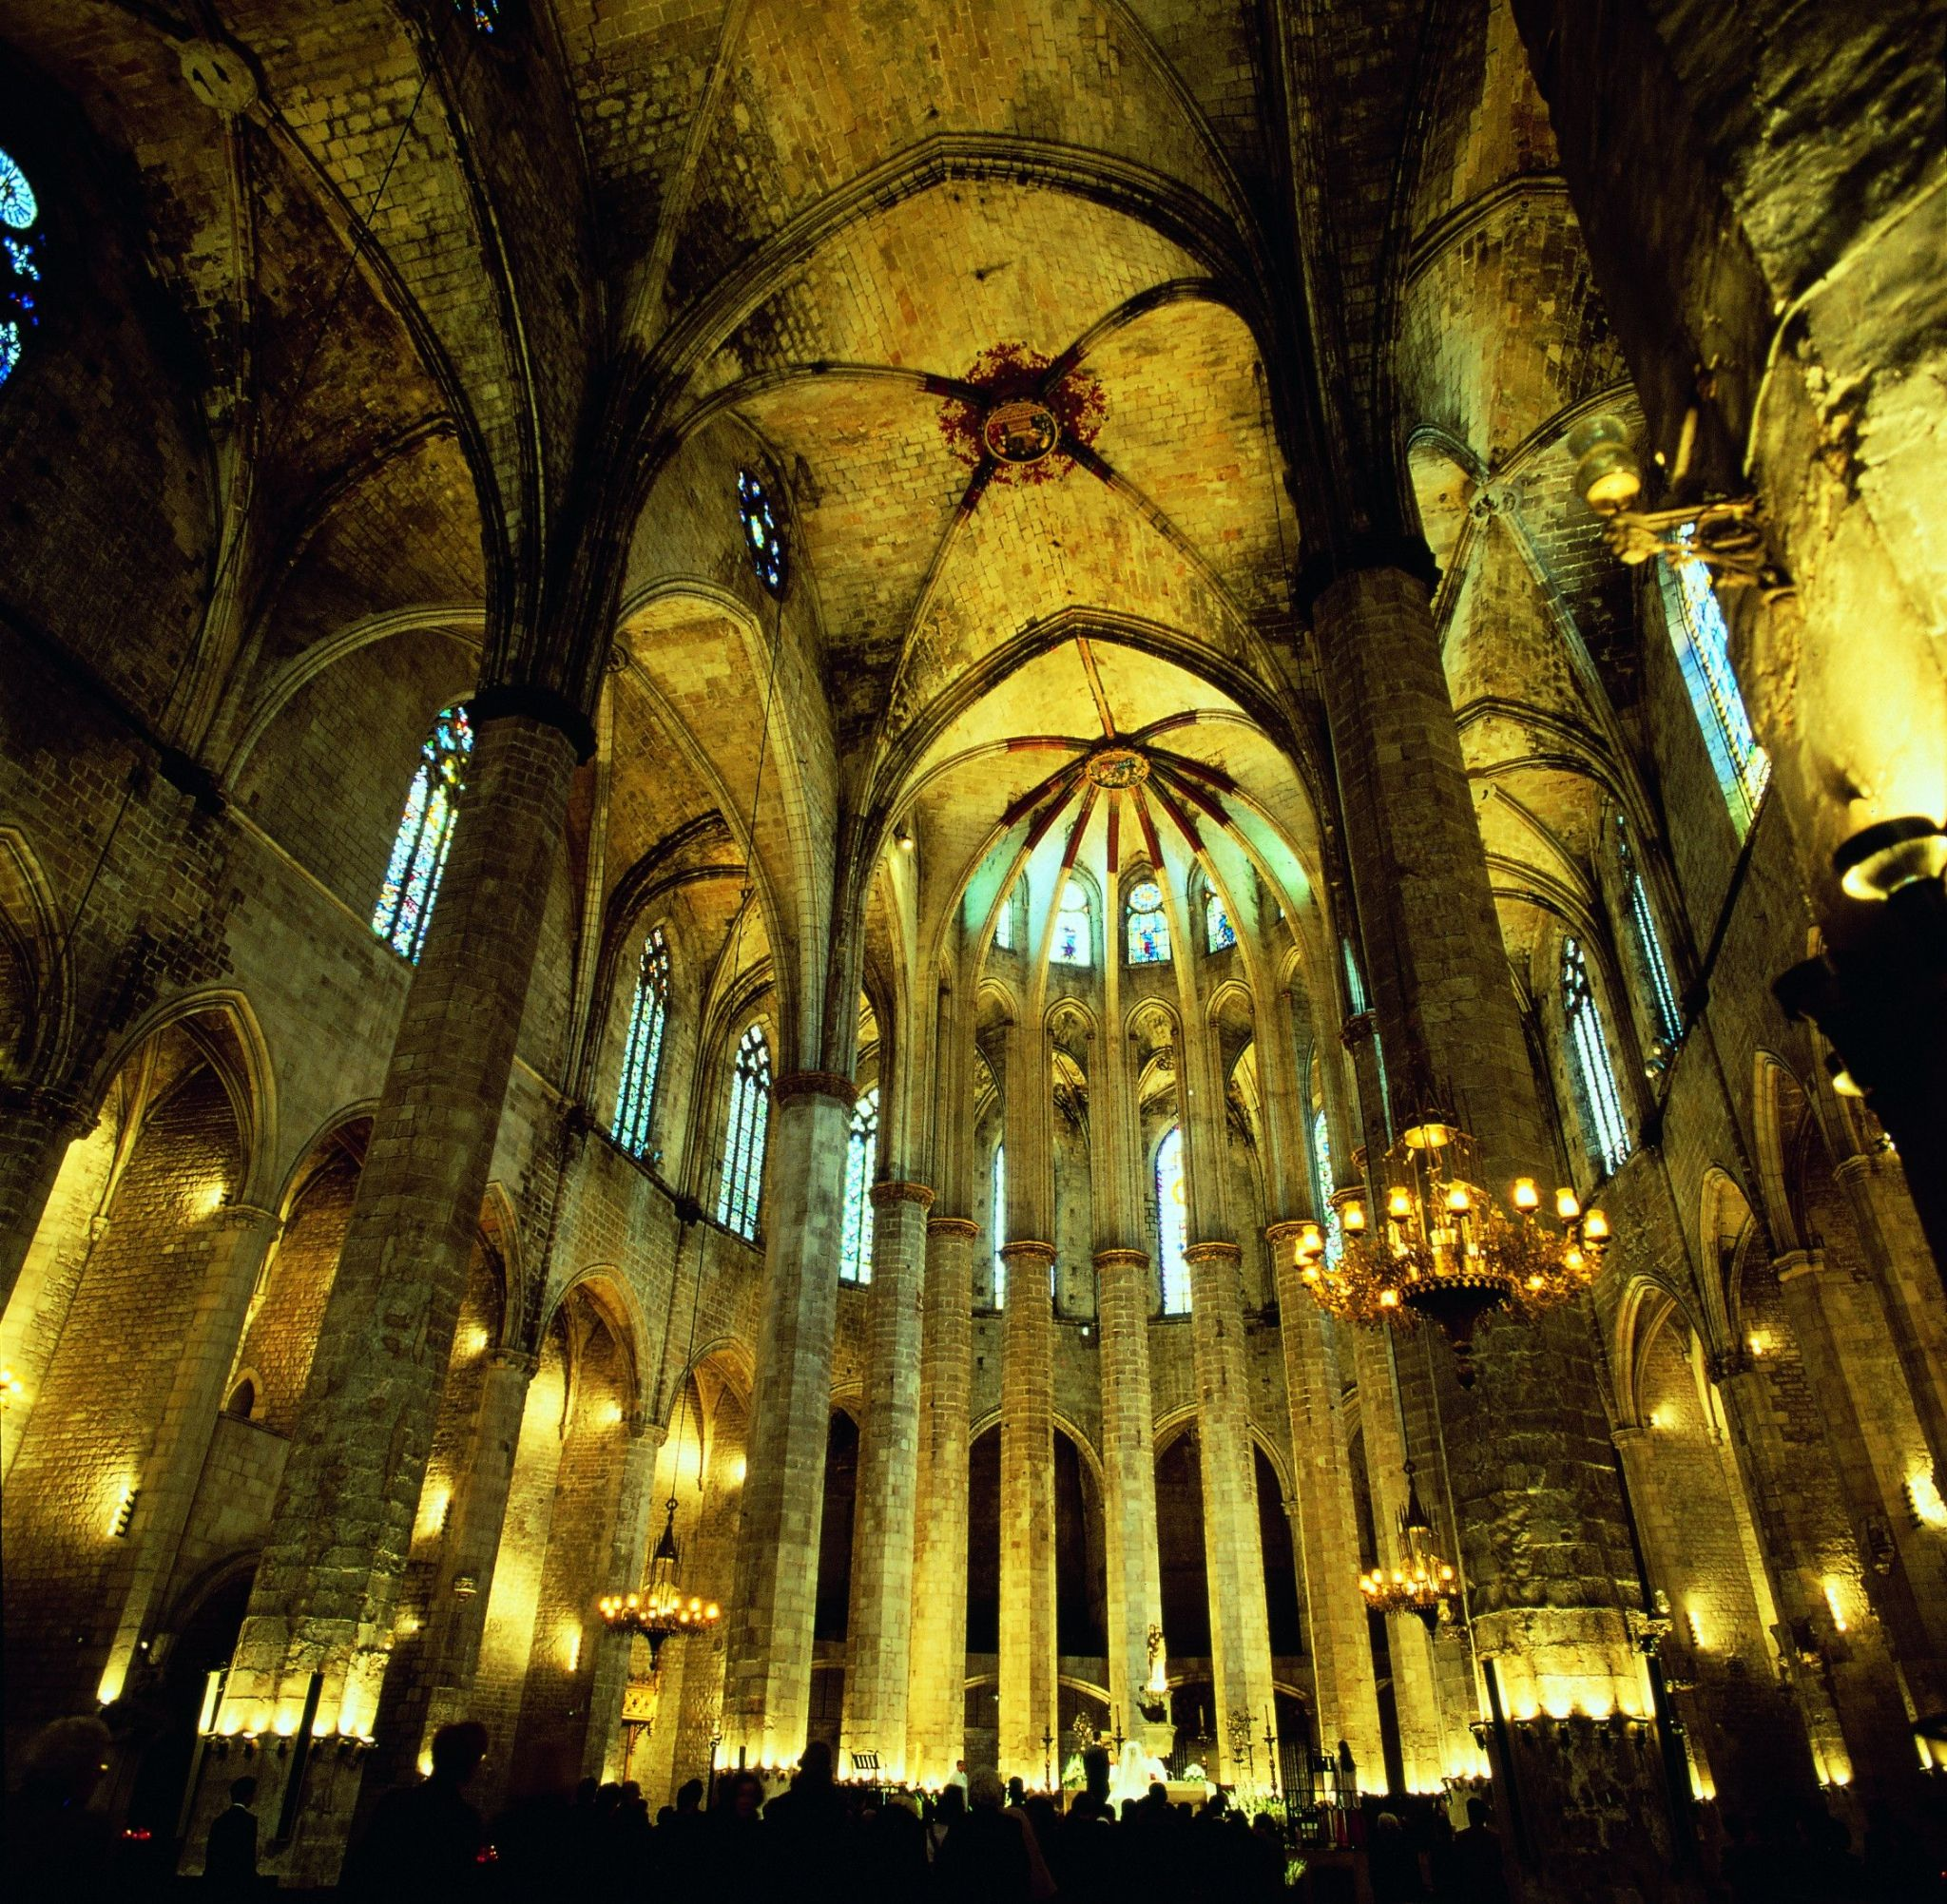 Interior view of Cathedral Santa Maria del Mar